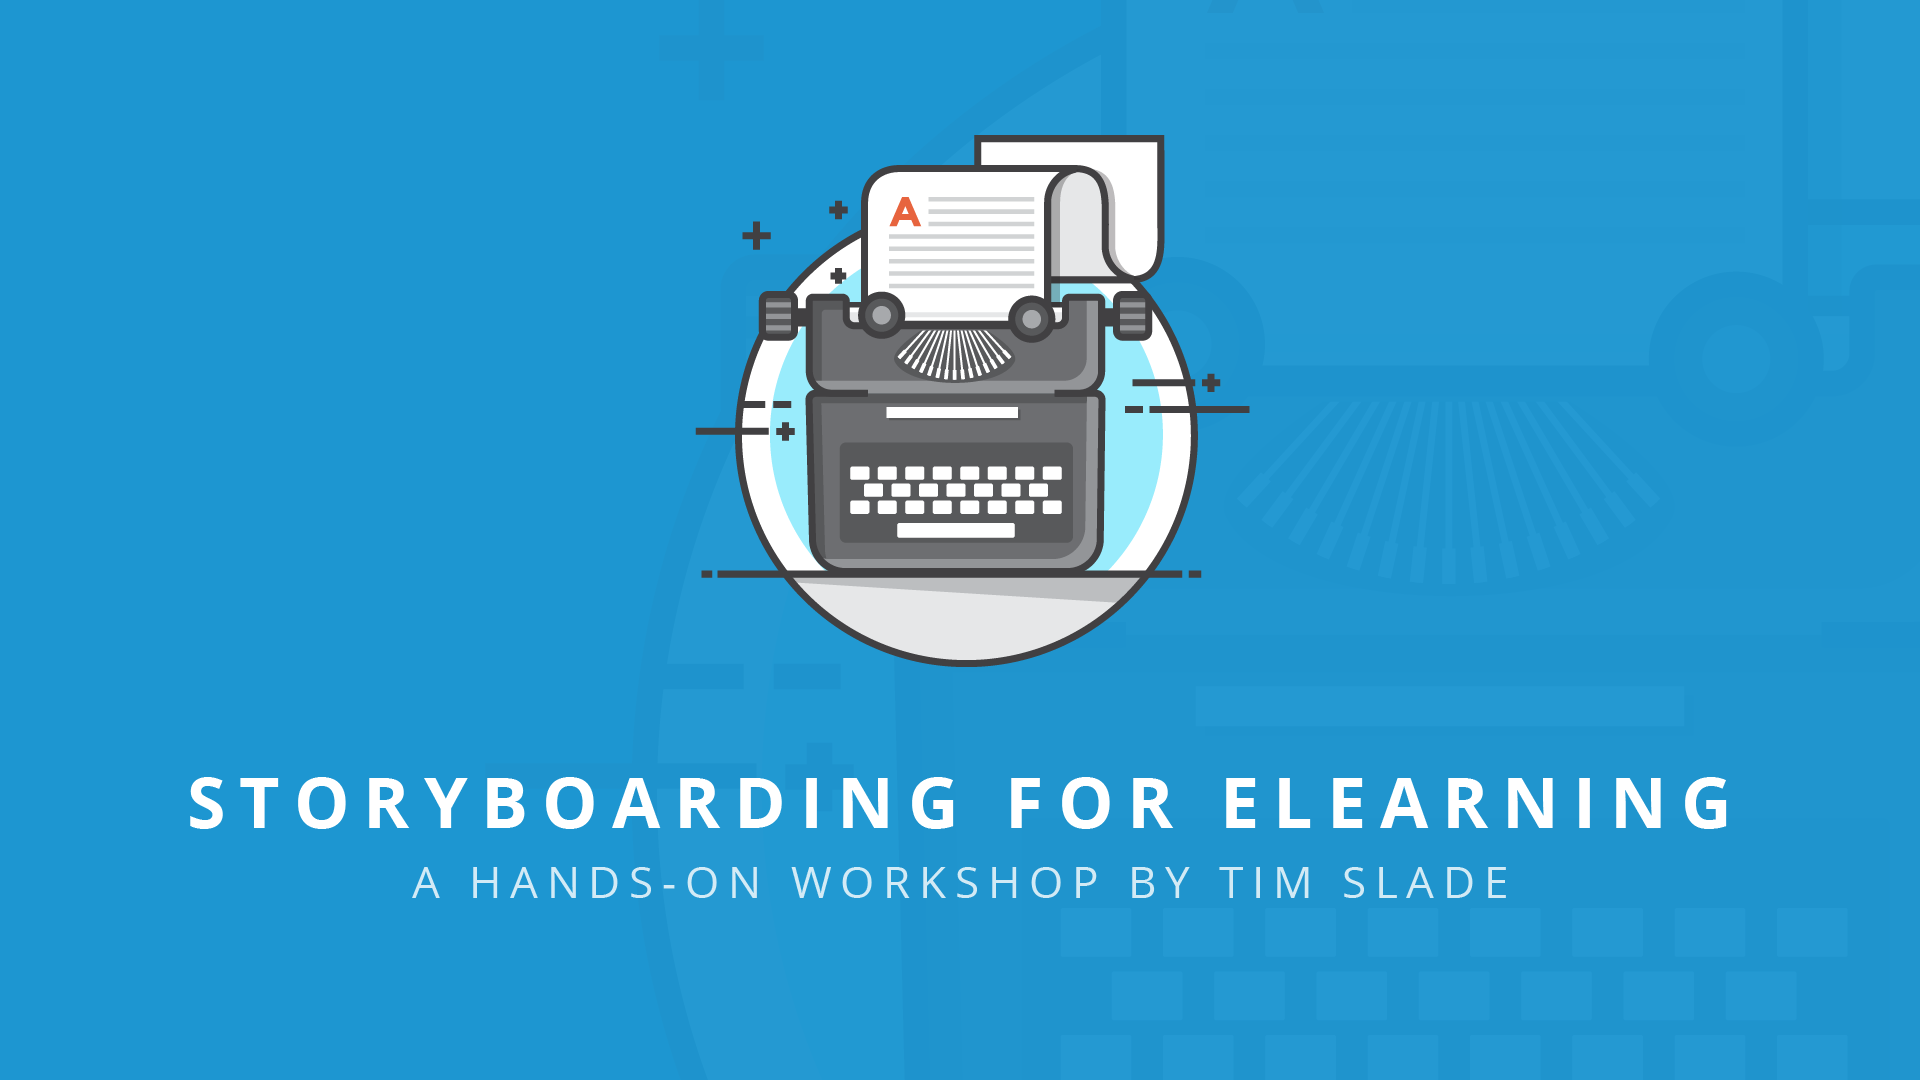 Storyboarding for eLearning - eLearning Workshops by Tim Slade